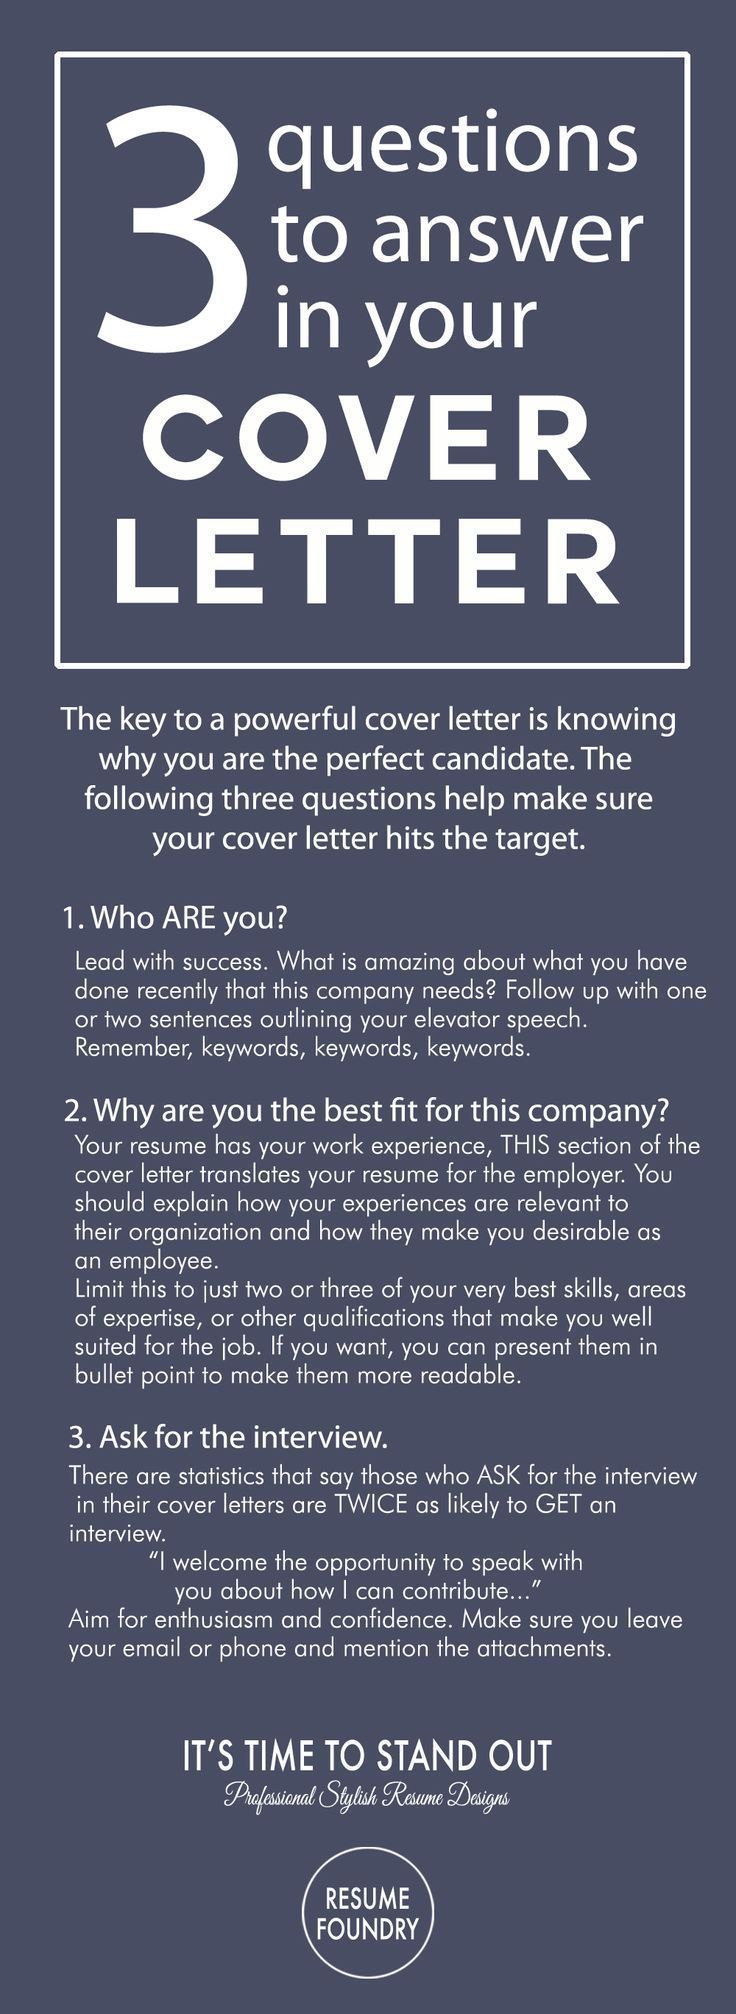 3 Questions To Answer In A Cover Letter When Applying For A Job Go Get That Interview Cover Letter Tips Job Interview Tips Resume Tips